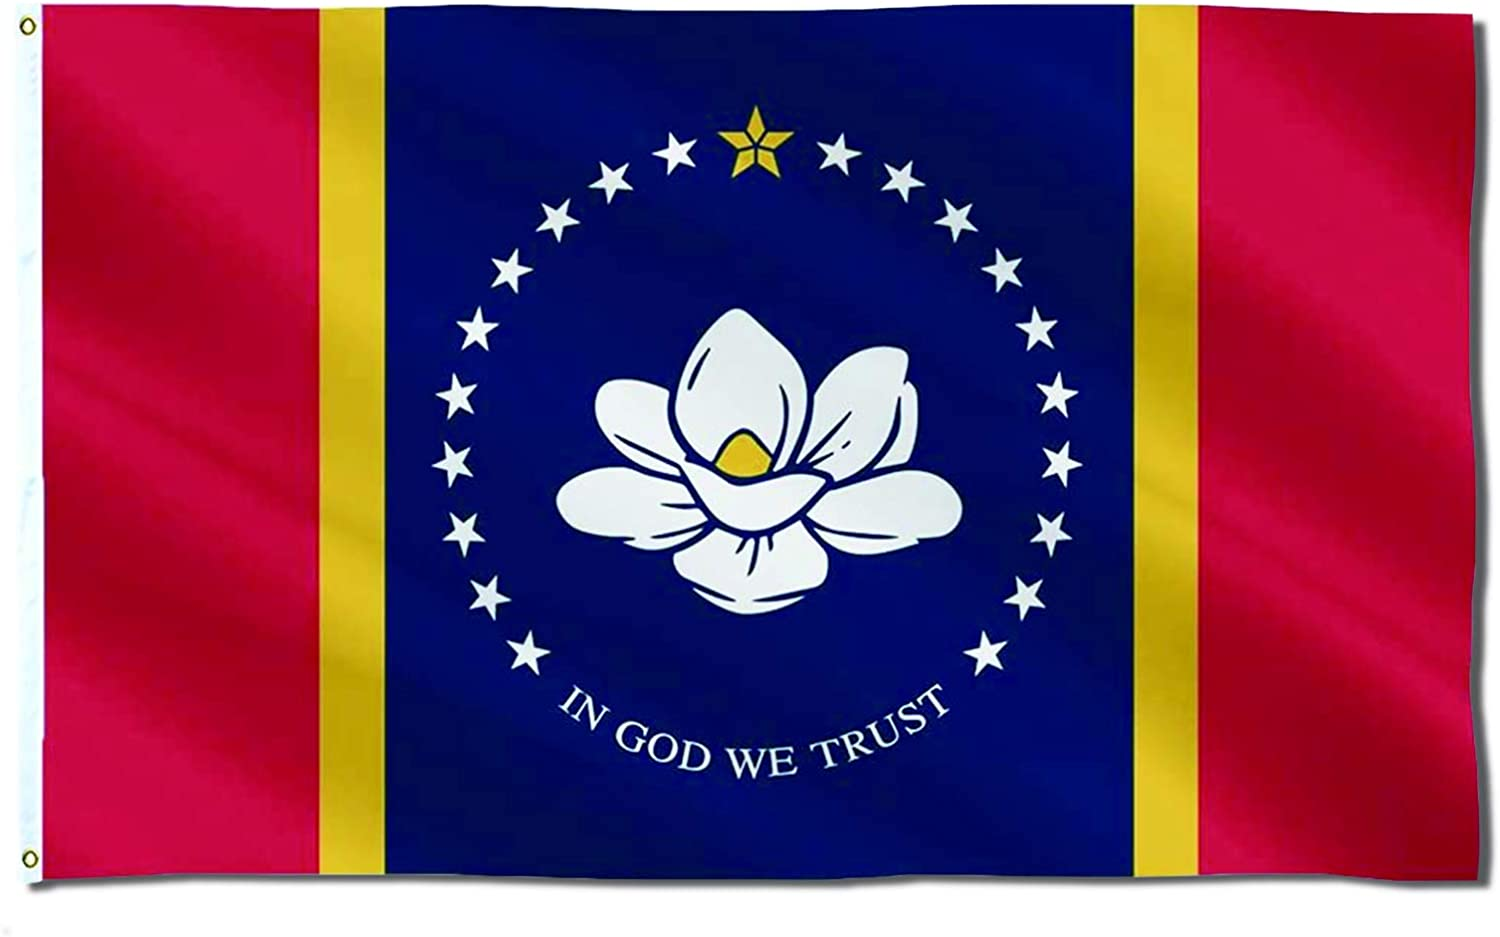 New Mississippi State Flag, 3x5 Outdoor in God We Trust Flag, Magnolia Flag, 150D Polyester Fabric, Brass Grommets, Fading Resistance